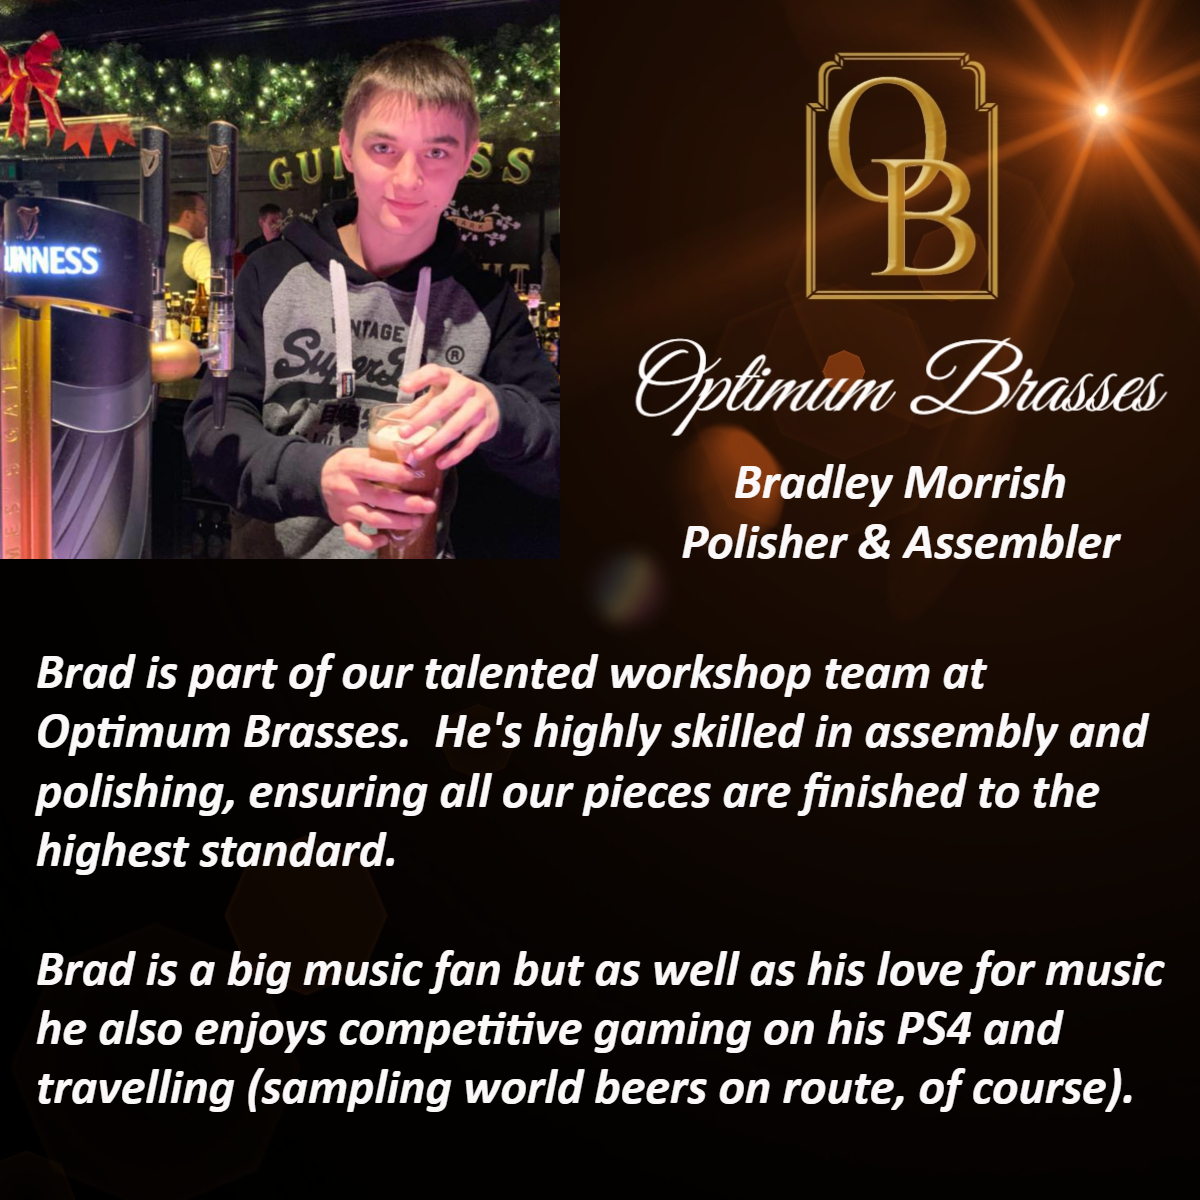 Brad is part of our talented workshop team at Optimum Brasses.  He's highly skilled in assembly and polishing, ensuring all our pieces are finished to the highest standard.  Brad is a big music fan but as well as his love for music he also enjoys competitive gaming on his PS4 and travelling (sampling world beers on route, of course).